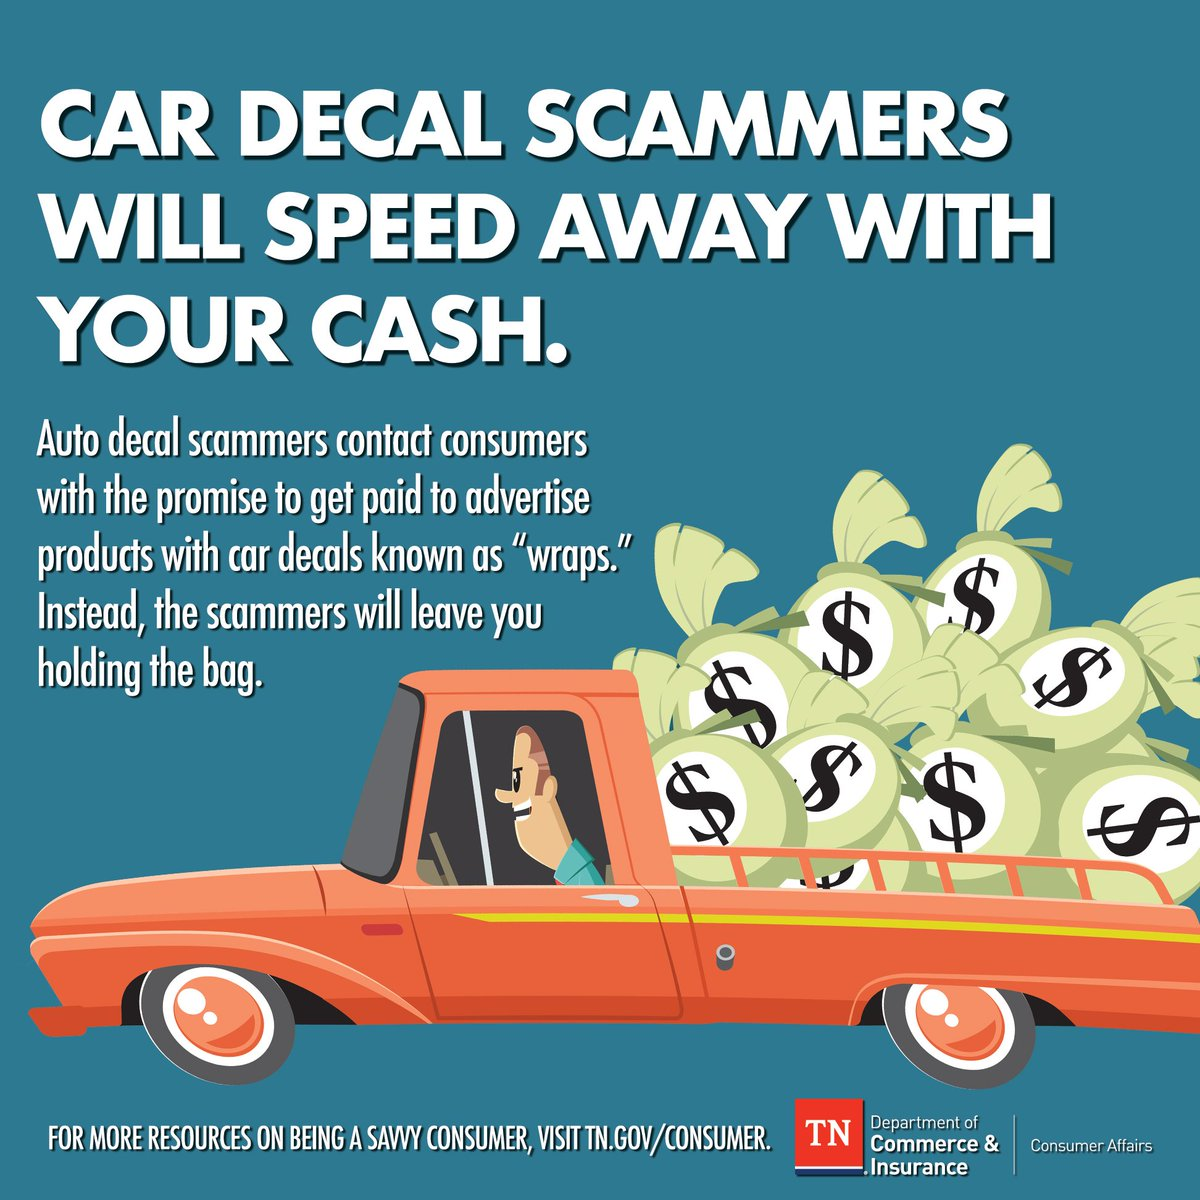 Consumerprotection https www tn gov commerce news 2018 8 23 tdci warns of a new scam trend that promises quick easy money html pic twitter com